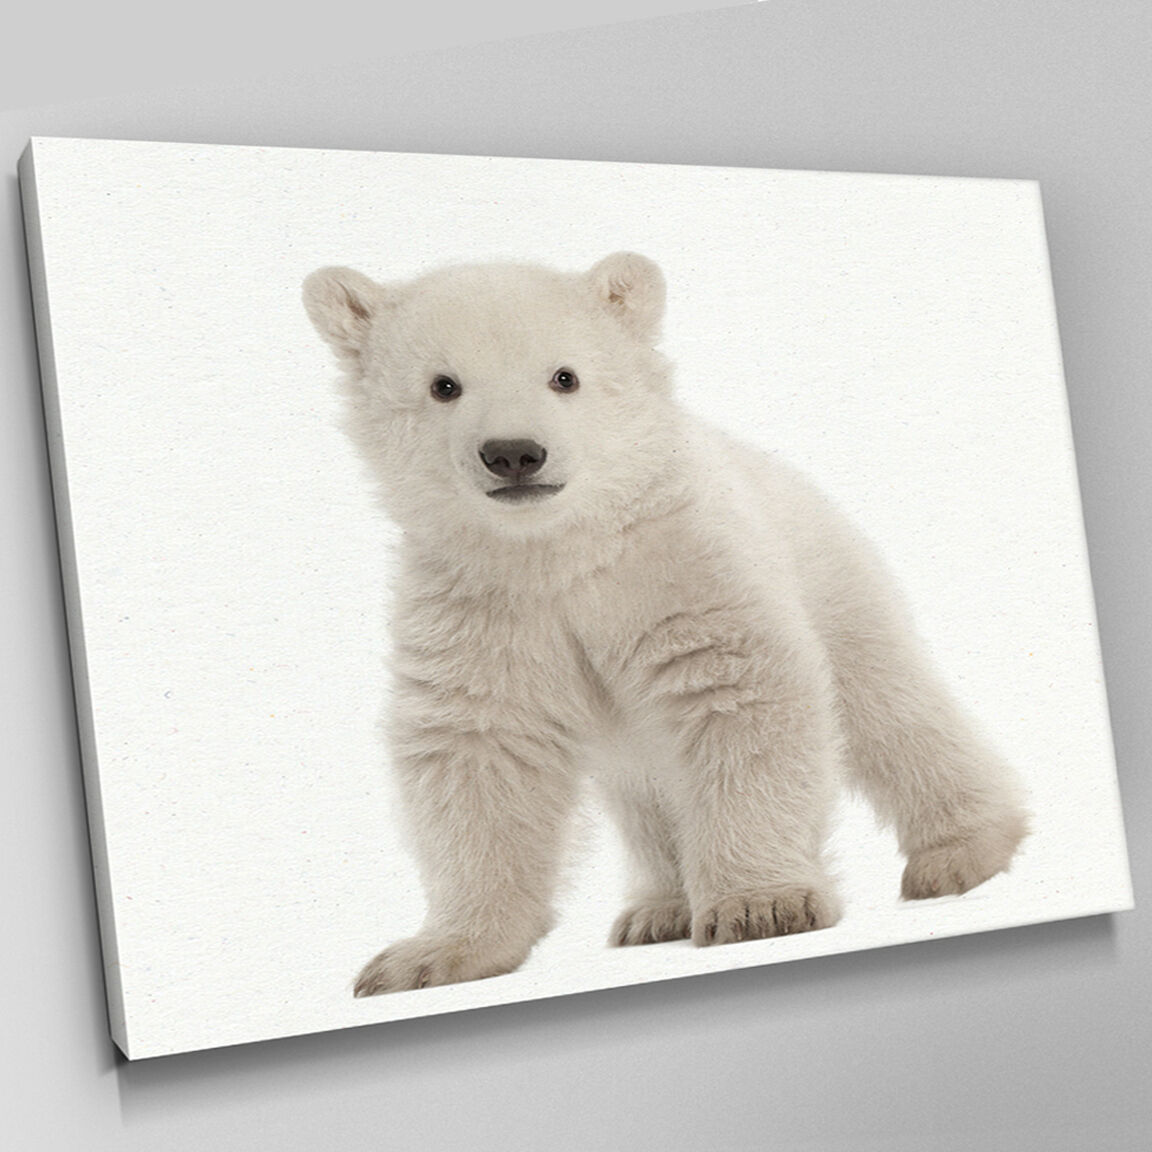 A349 Polar Bear Cub Adorable Stare Canvas Wall Art Animal Picture Large Print